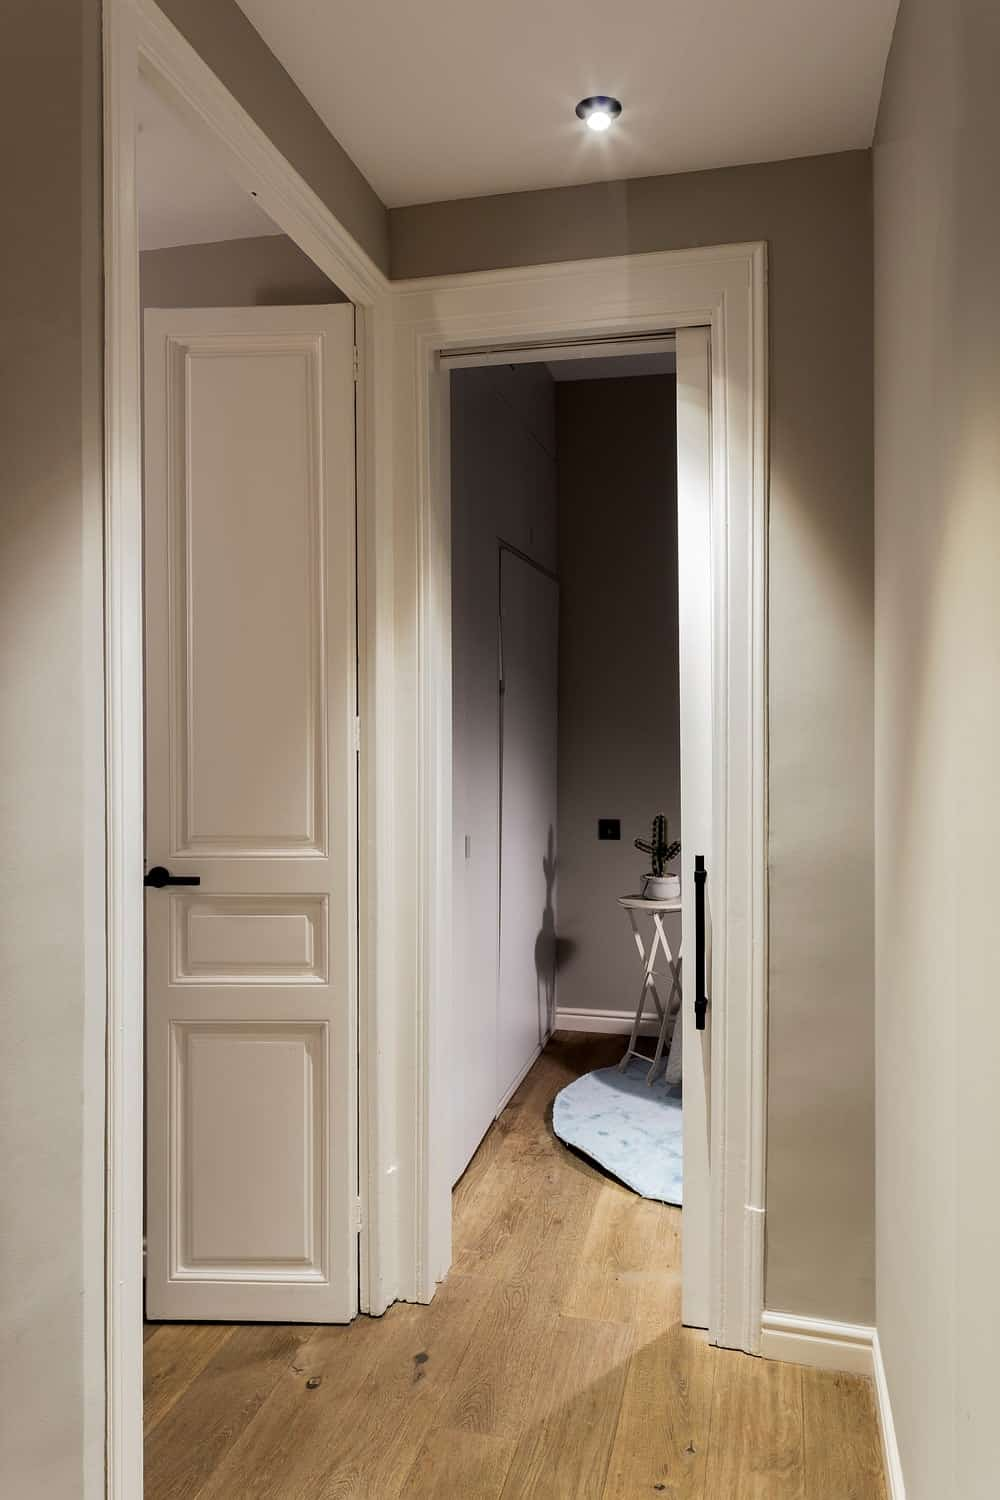 This view of the hallway shows the narrow doorway towards the home office.